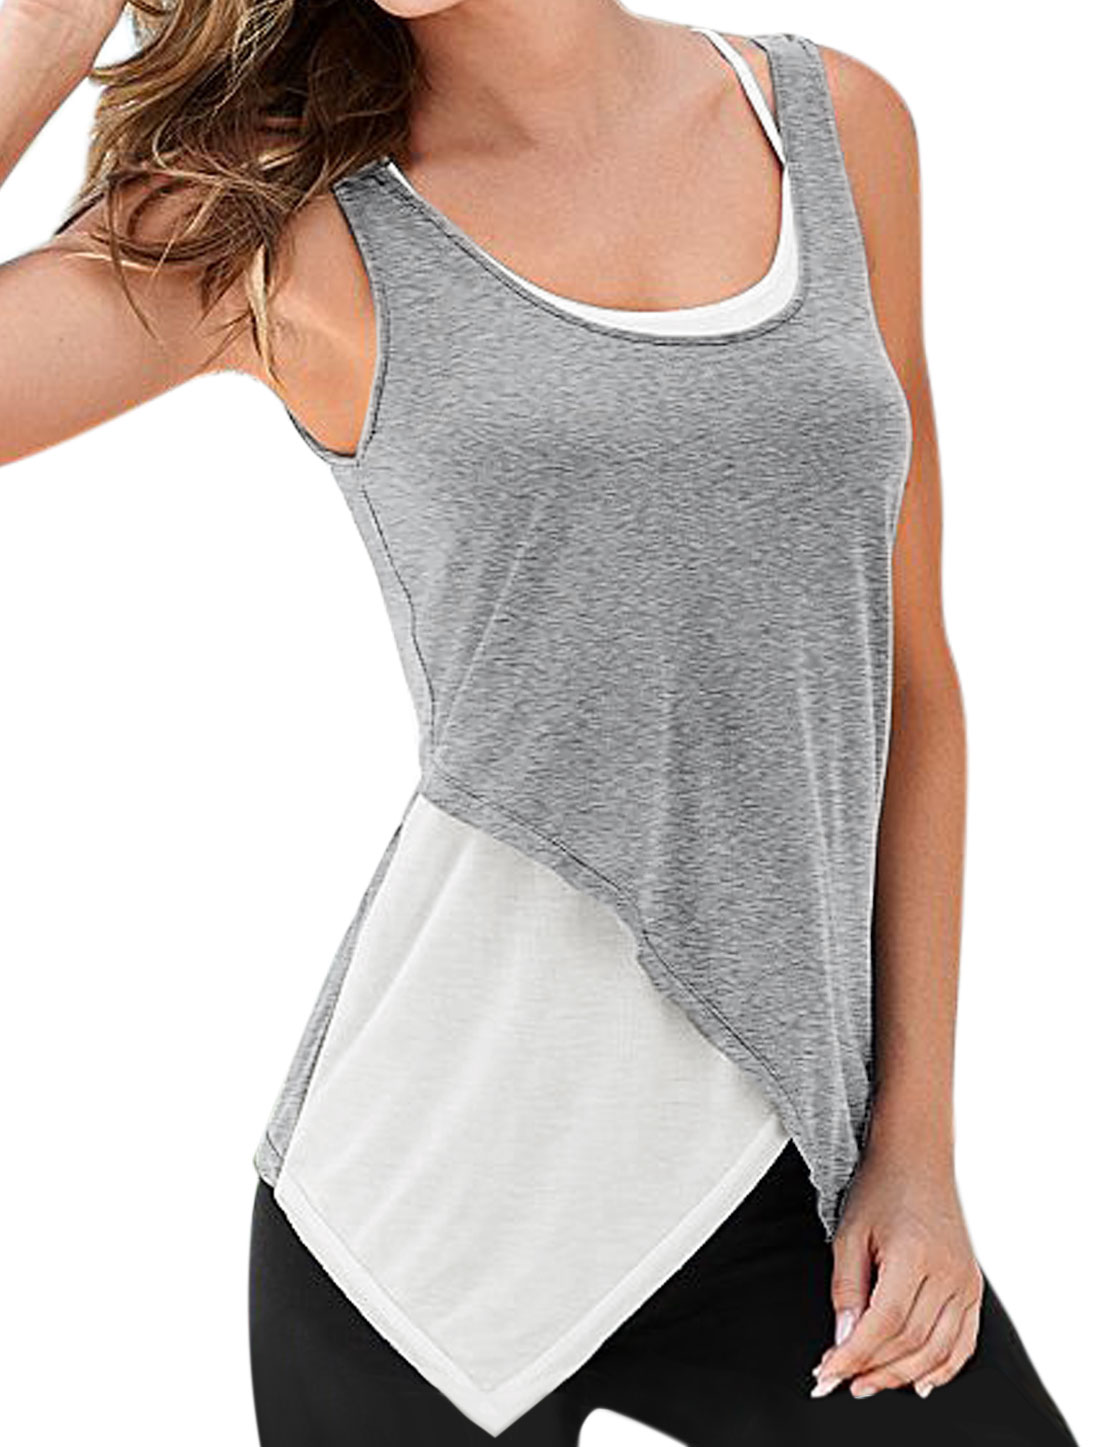 Women Round Neck Contrast Color Strappy Back Layered Tank Top Gray M